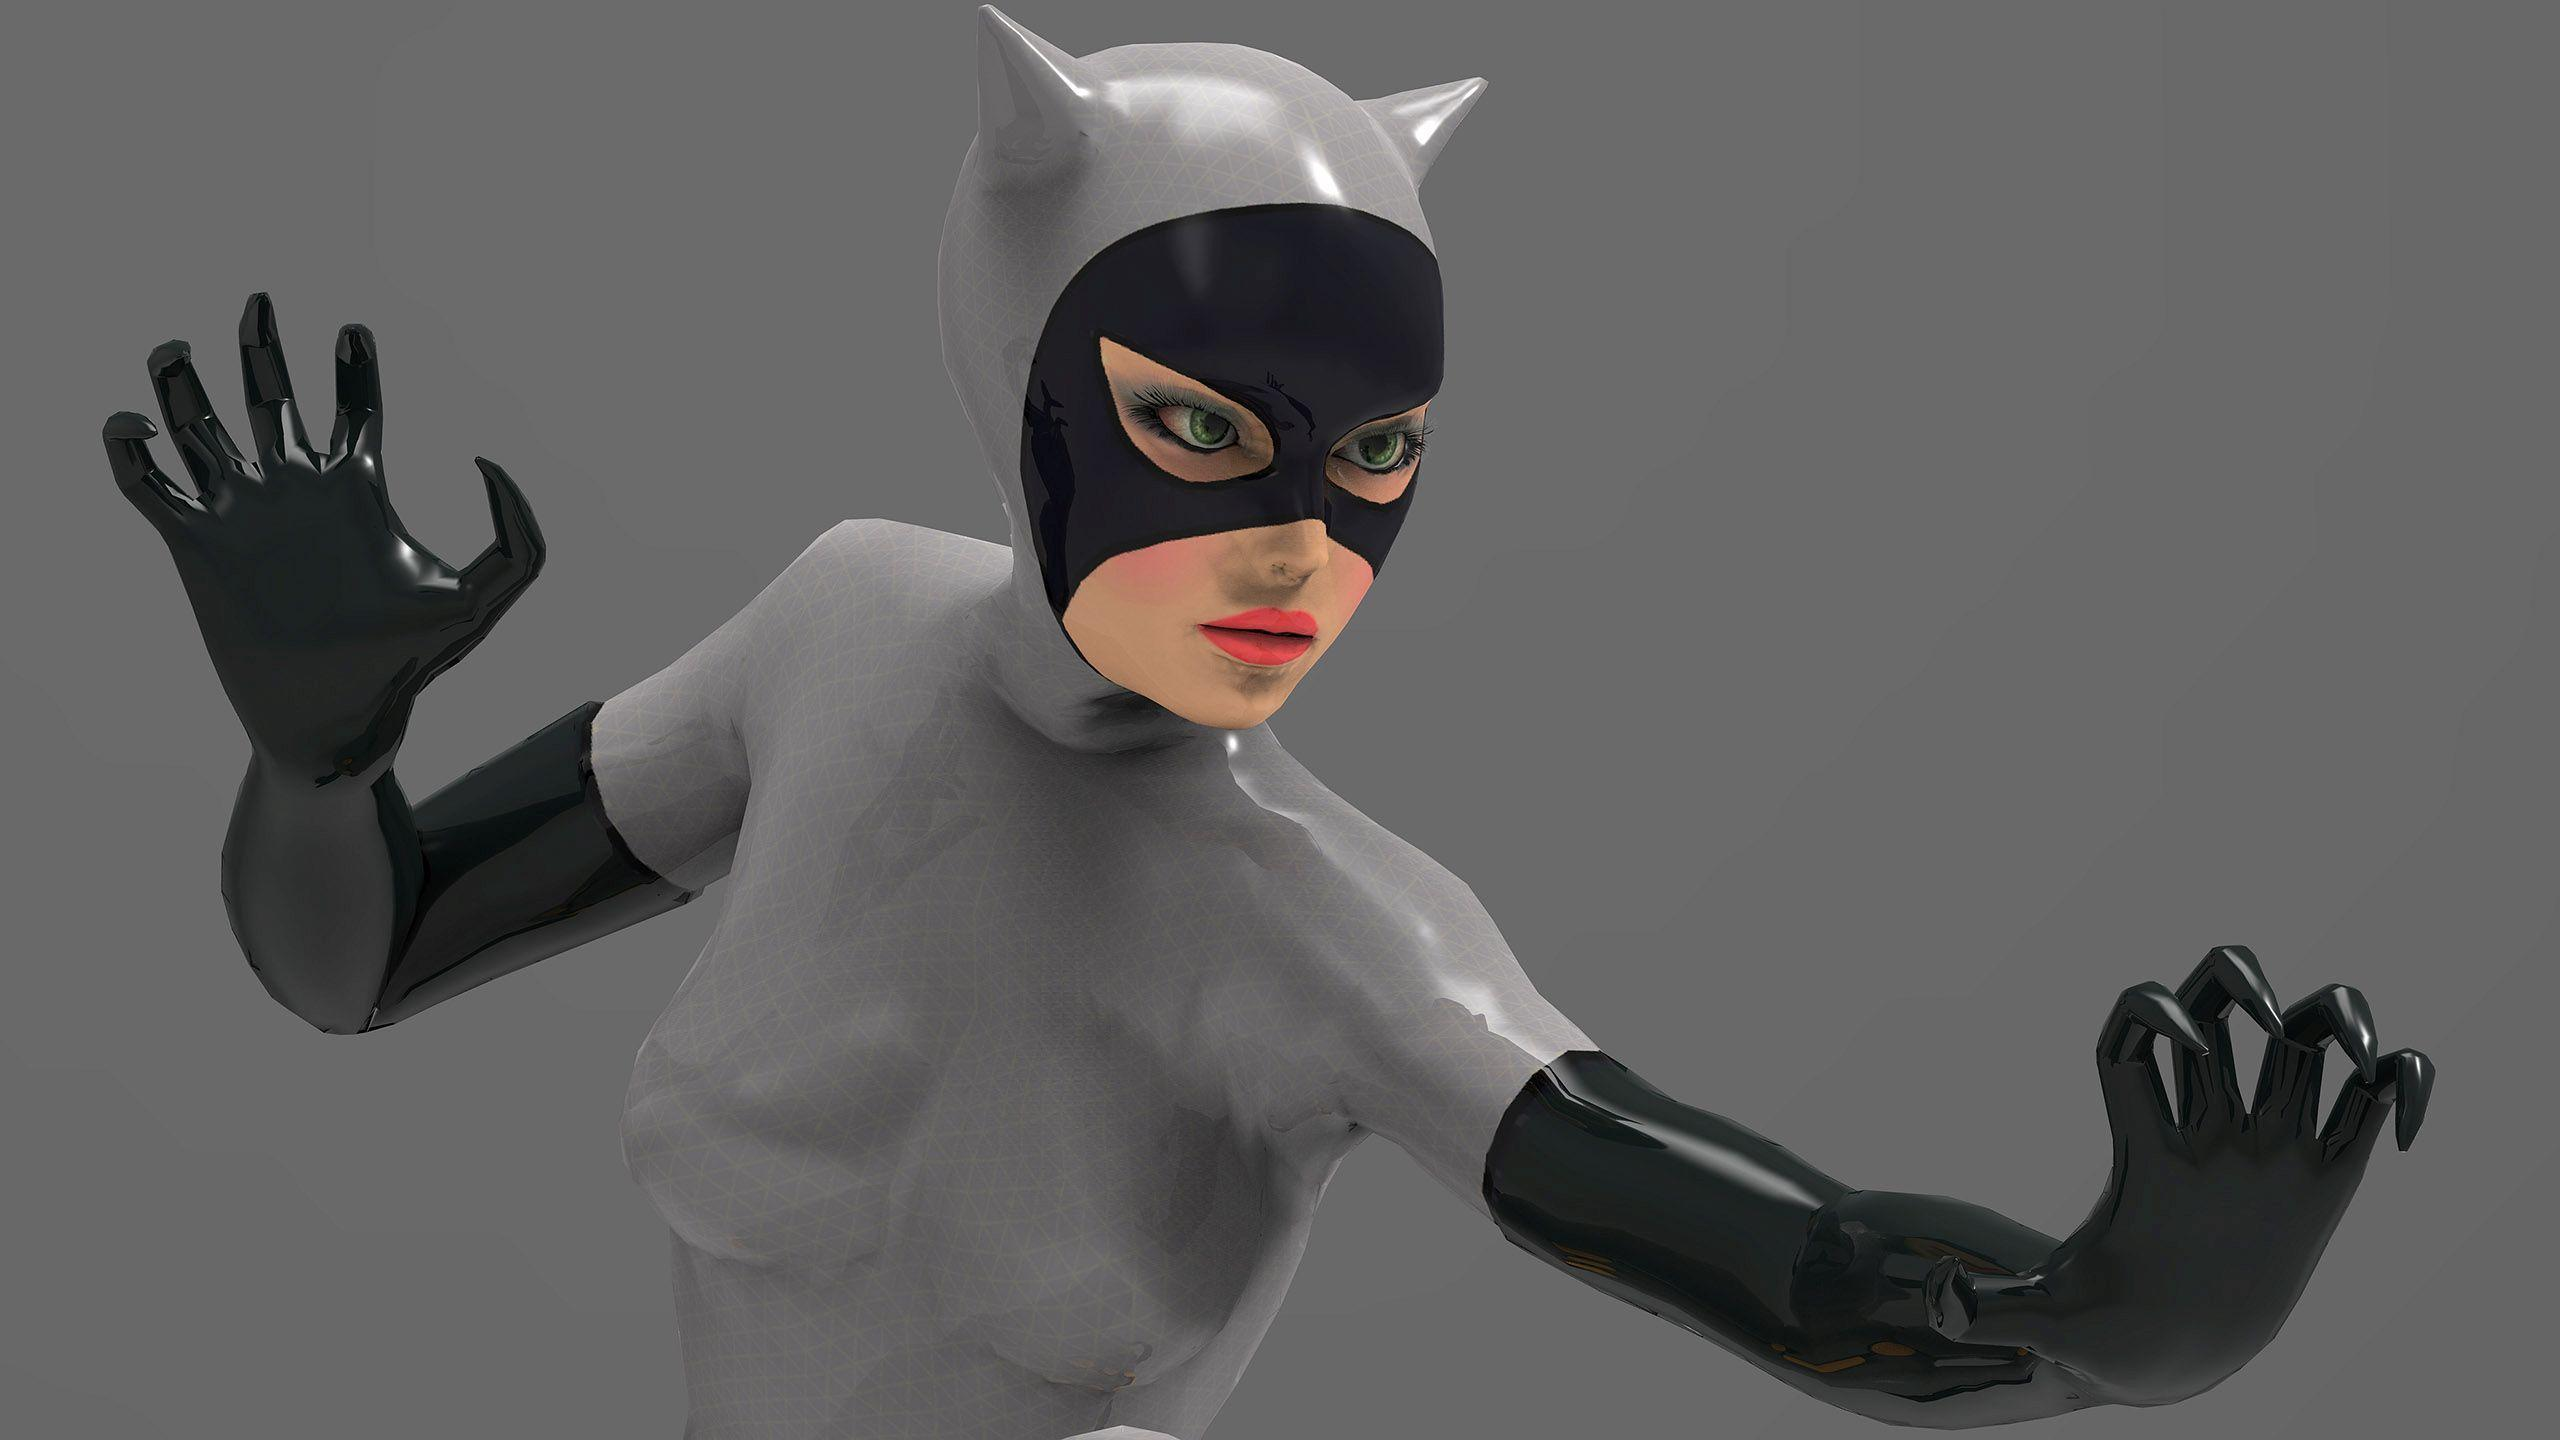 Cute Small Baby Wallpapers Hd Hd Shiny Catwoman Wallpaper Download Free 149423